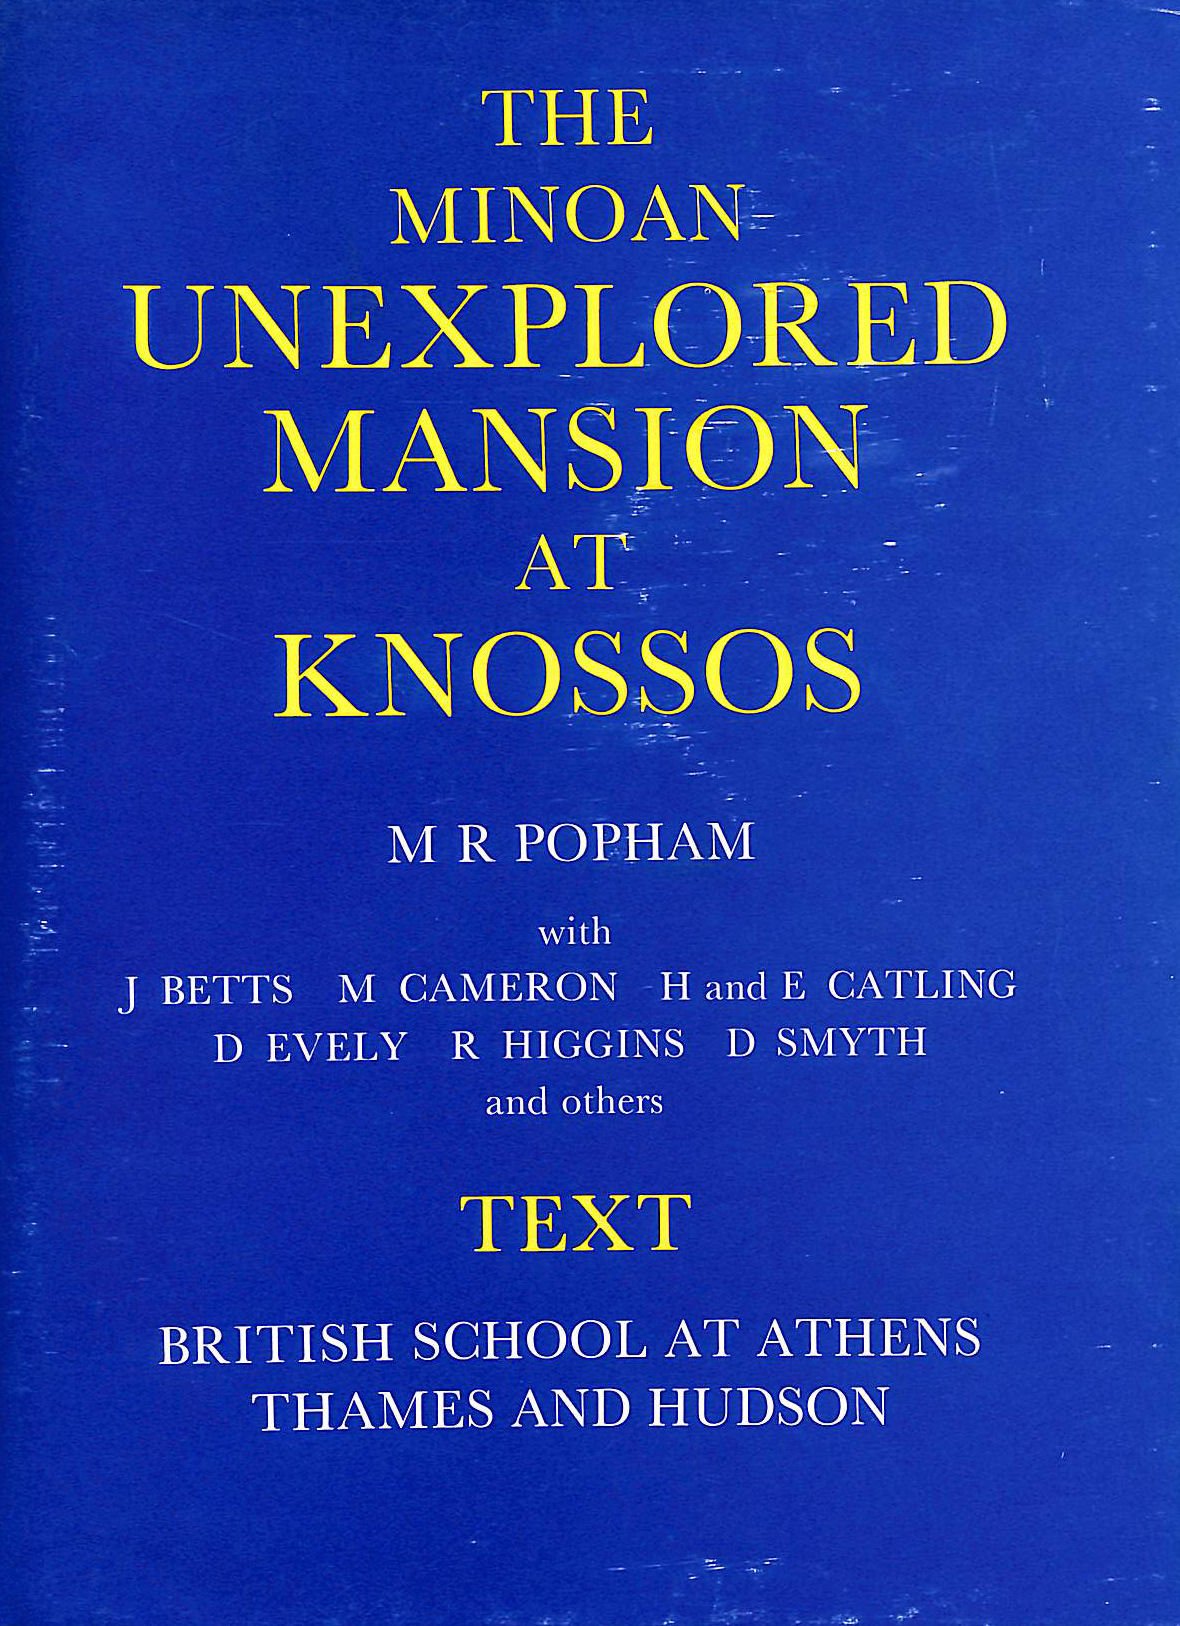 Image for The Minoan Unexplored Mansion at Knossos -Text